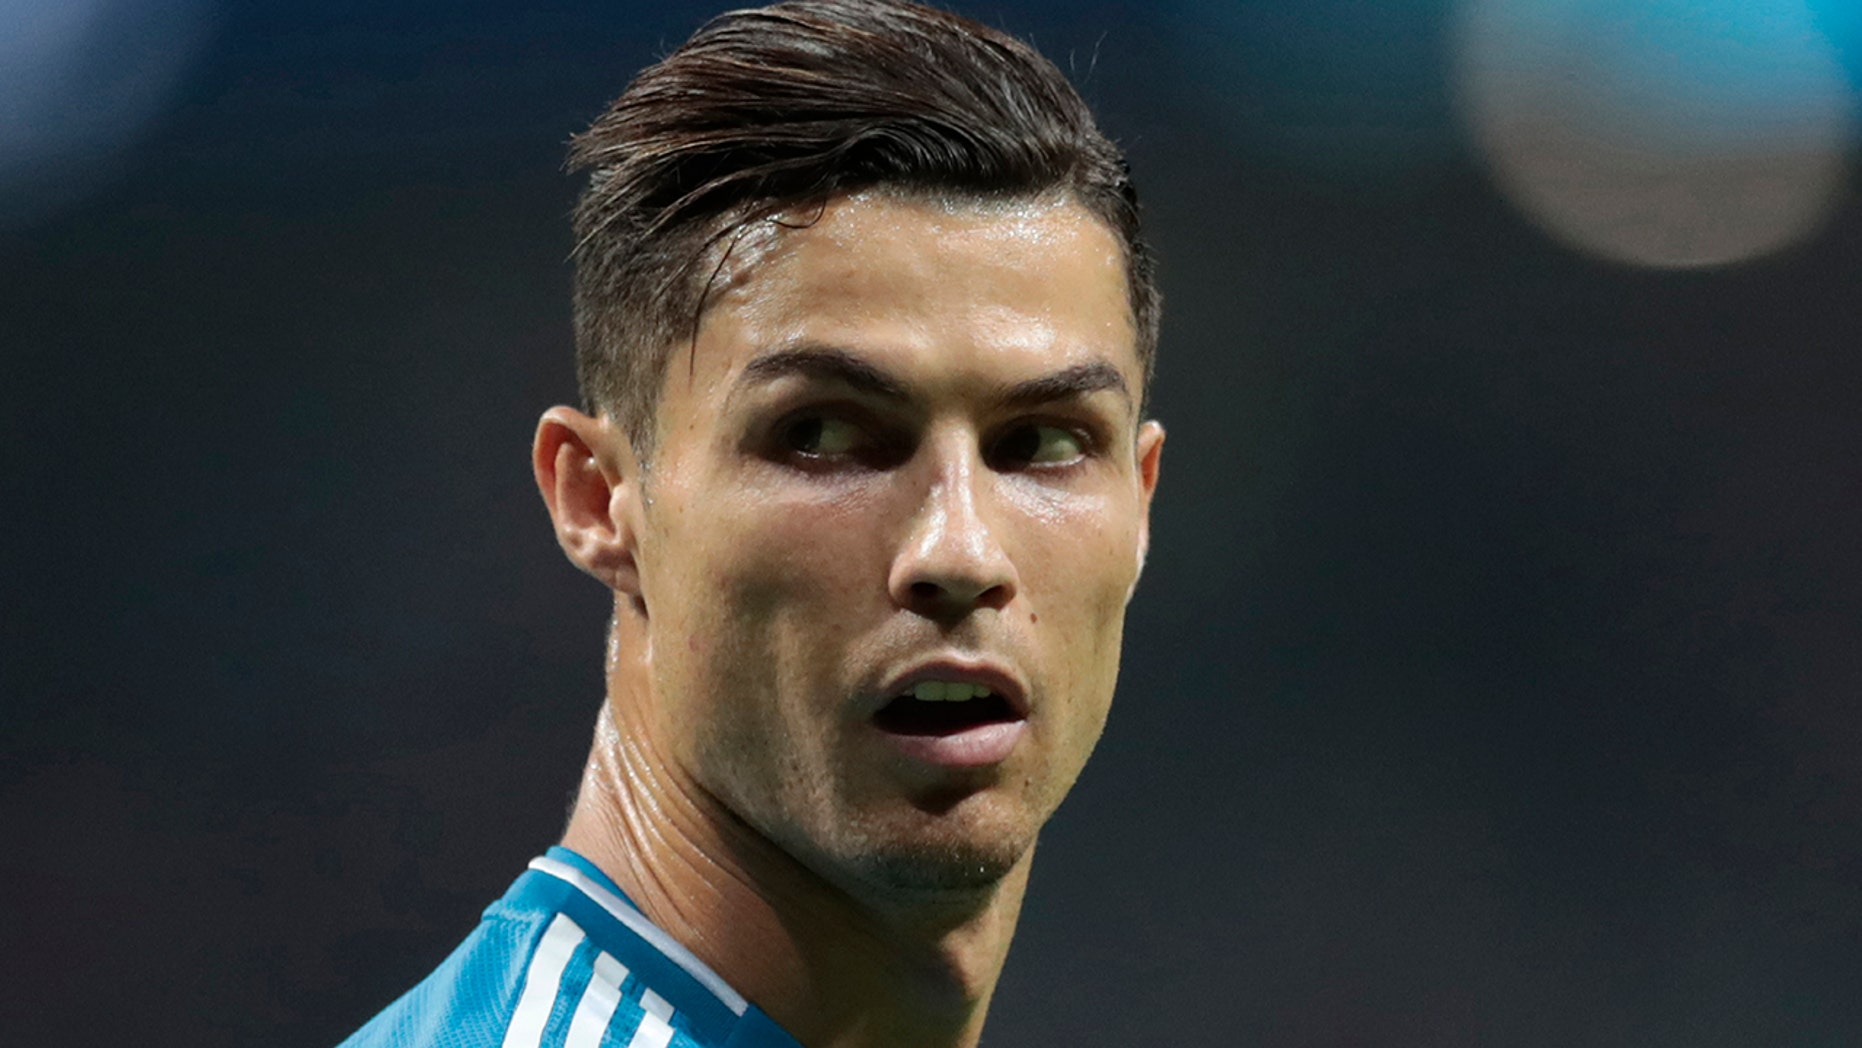 FILE - In this Sept. 18, 2019, file photo, Juventus' Cristiano Ronaldo looks back during the Champions League Group D soccer match between Atletico Madrid and Juventus at the Wanda Metropolitano stadium in Madrid, Spain. Cristiano Ronaldo's lawyers and attorneys for a Nevada woman accusing the soccer star of raping her in 2009 appeared Thursday, Nov. 7, 2019, before a federal magistrate judge who is new to the case. Kathryn Mayorga's lawsuit alleges she was coerced into a 2010 confidentiality agreement that paid her a $375,000 hush-money payment, and should be awarded more money. (AP Photo/Bernat Armangue, File)